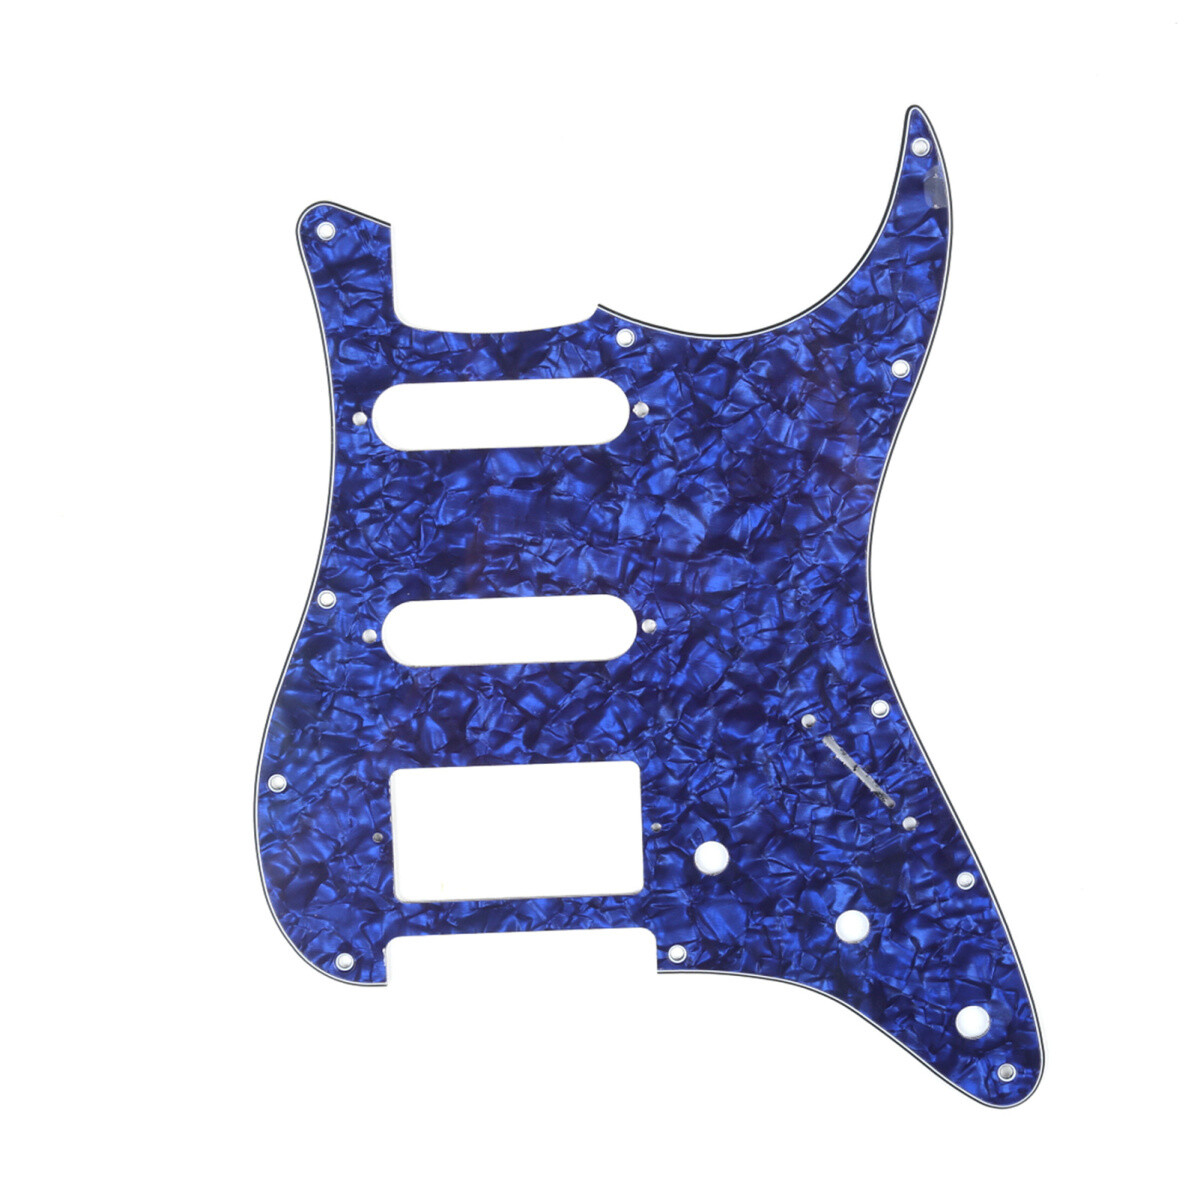 Brio 11 Hole HSS Strat® Pickguard for Fender US/Mex Made Standard Stratocaster Modern Style Pearoid Blue